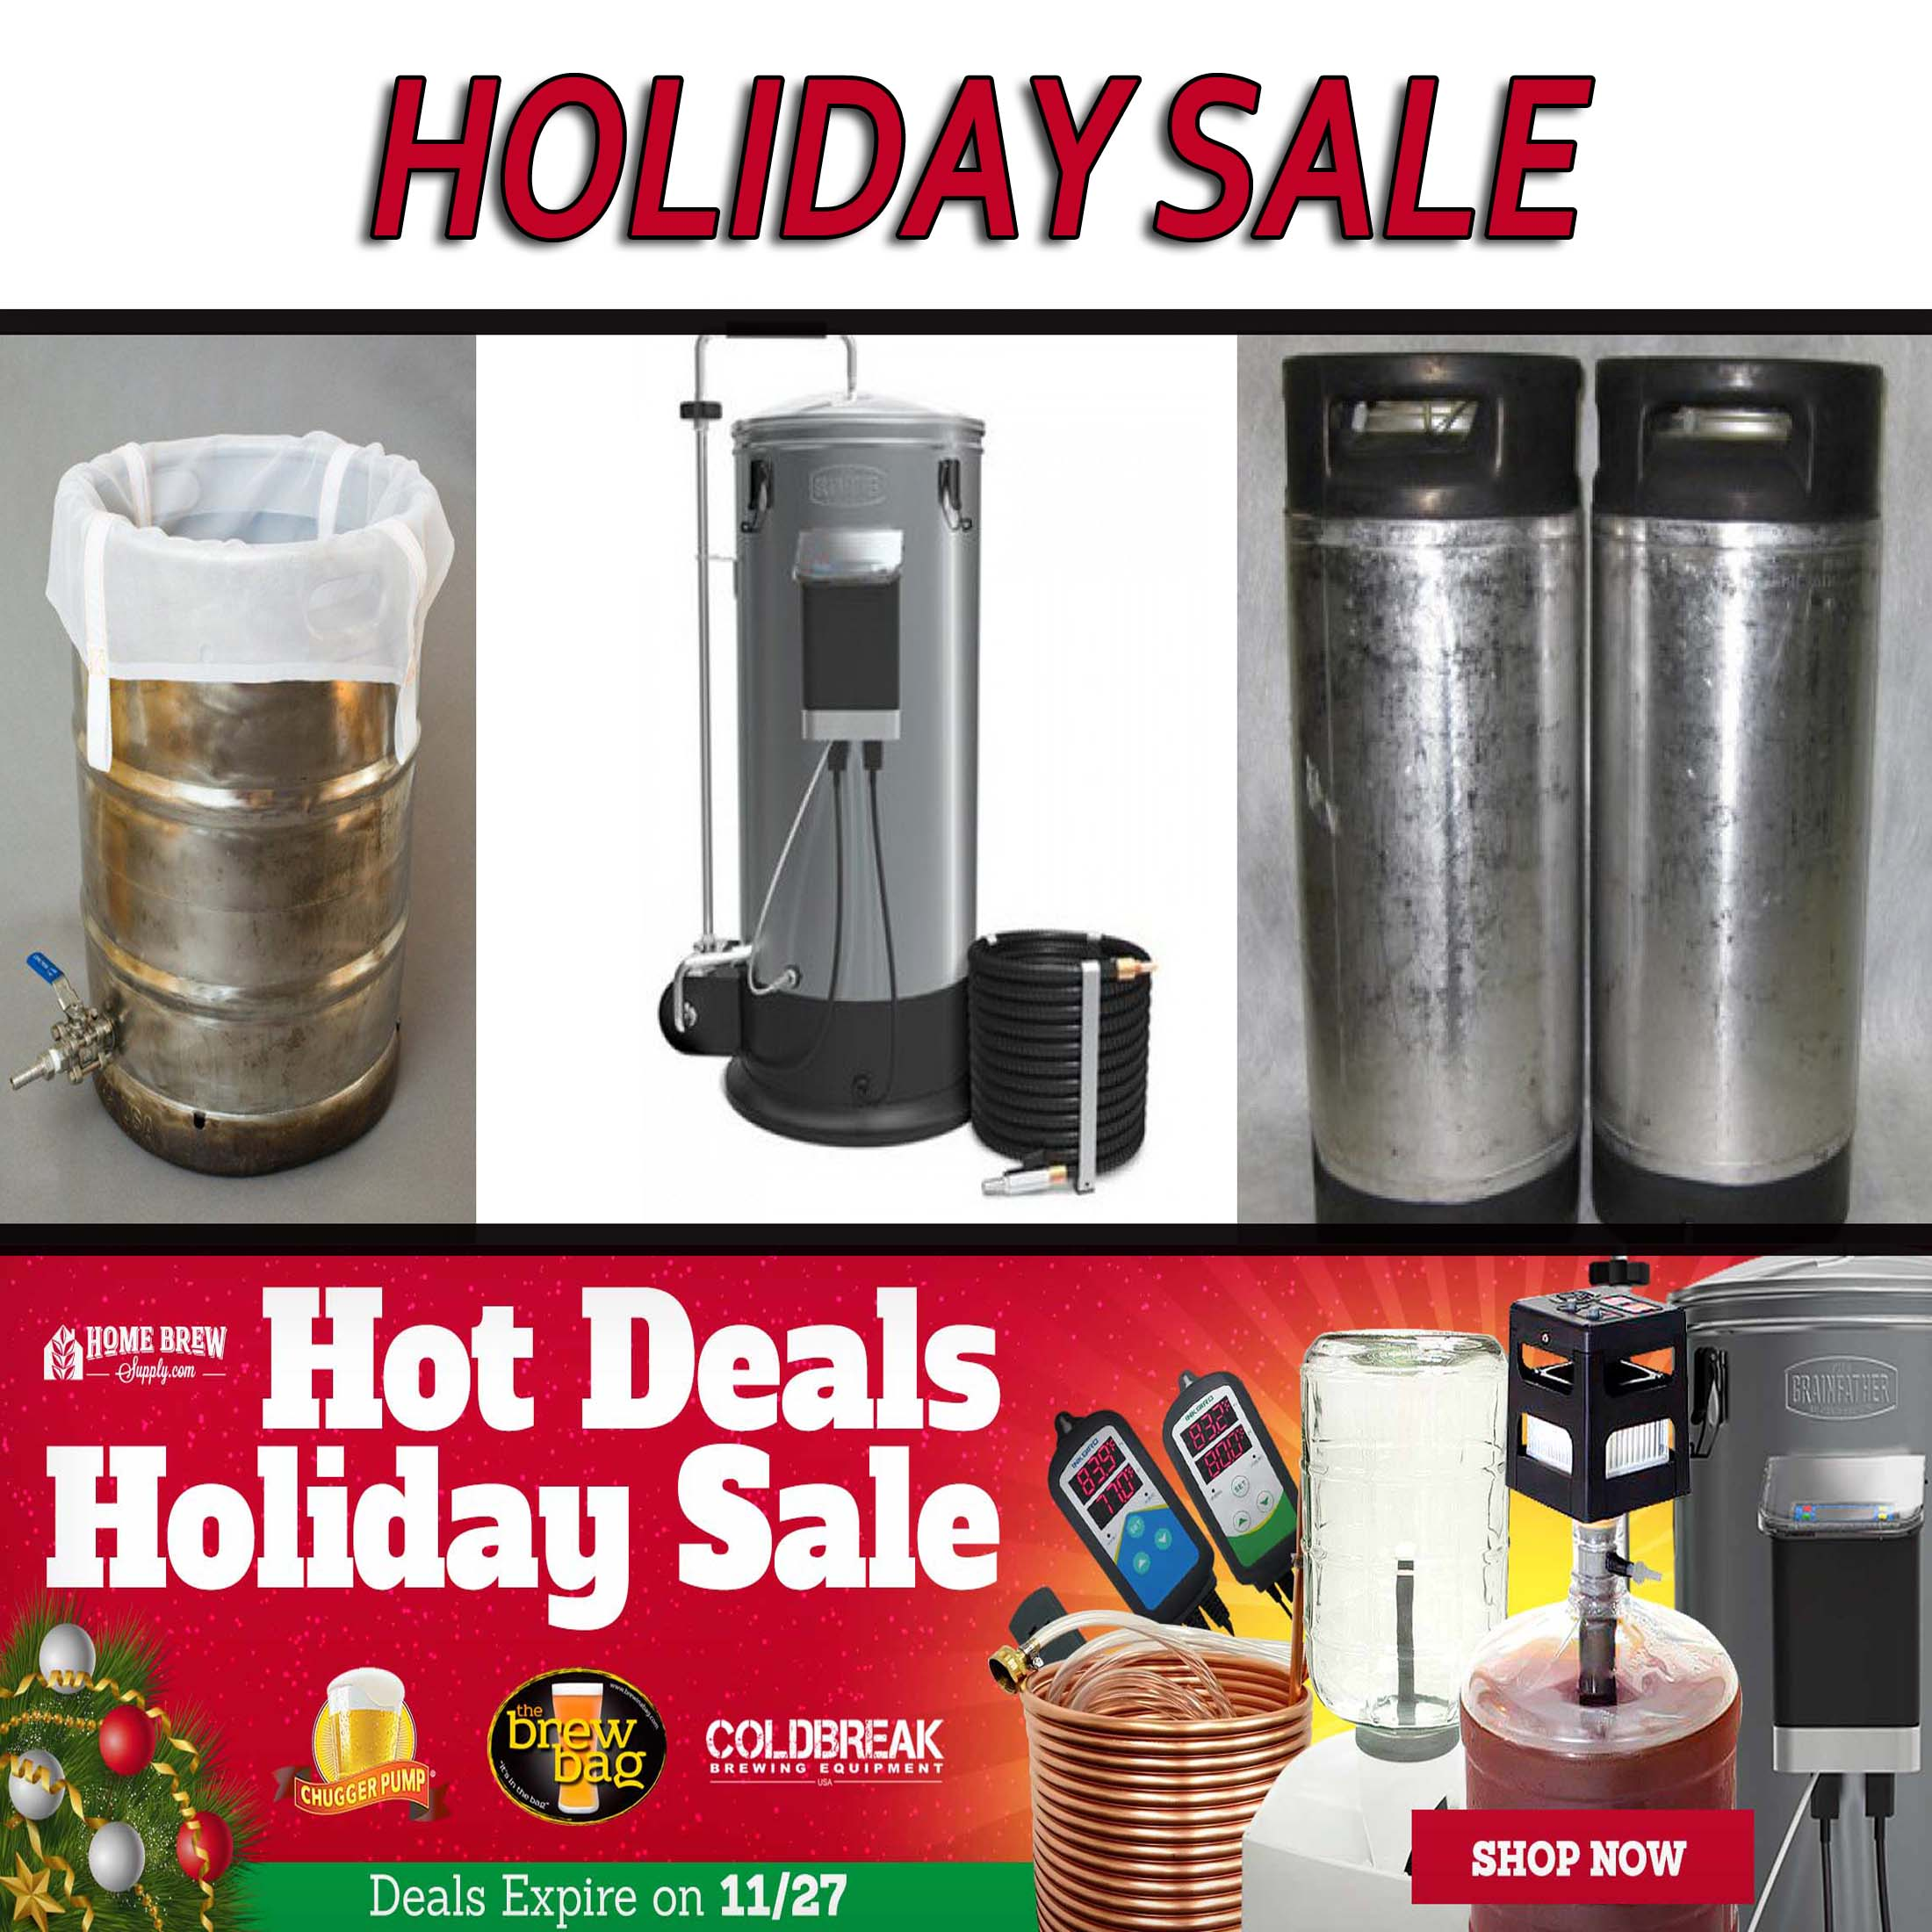 Save Big on Homebrewing Gear - 2-Day Holiday Sale Promo Codes